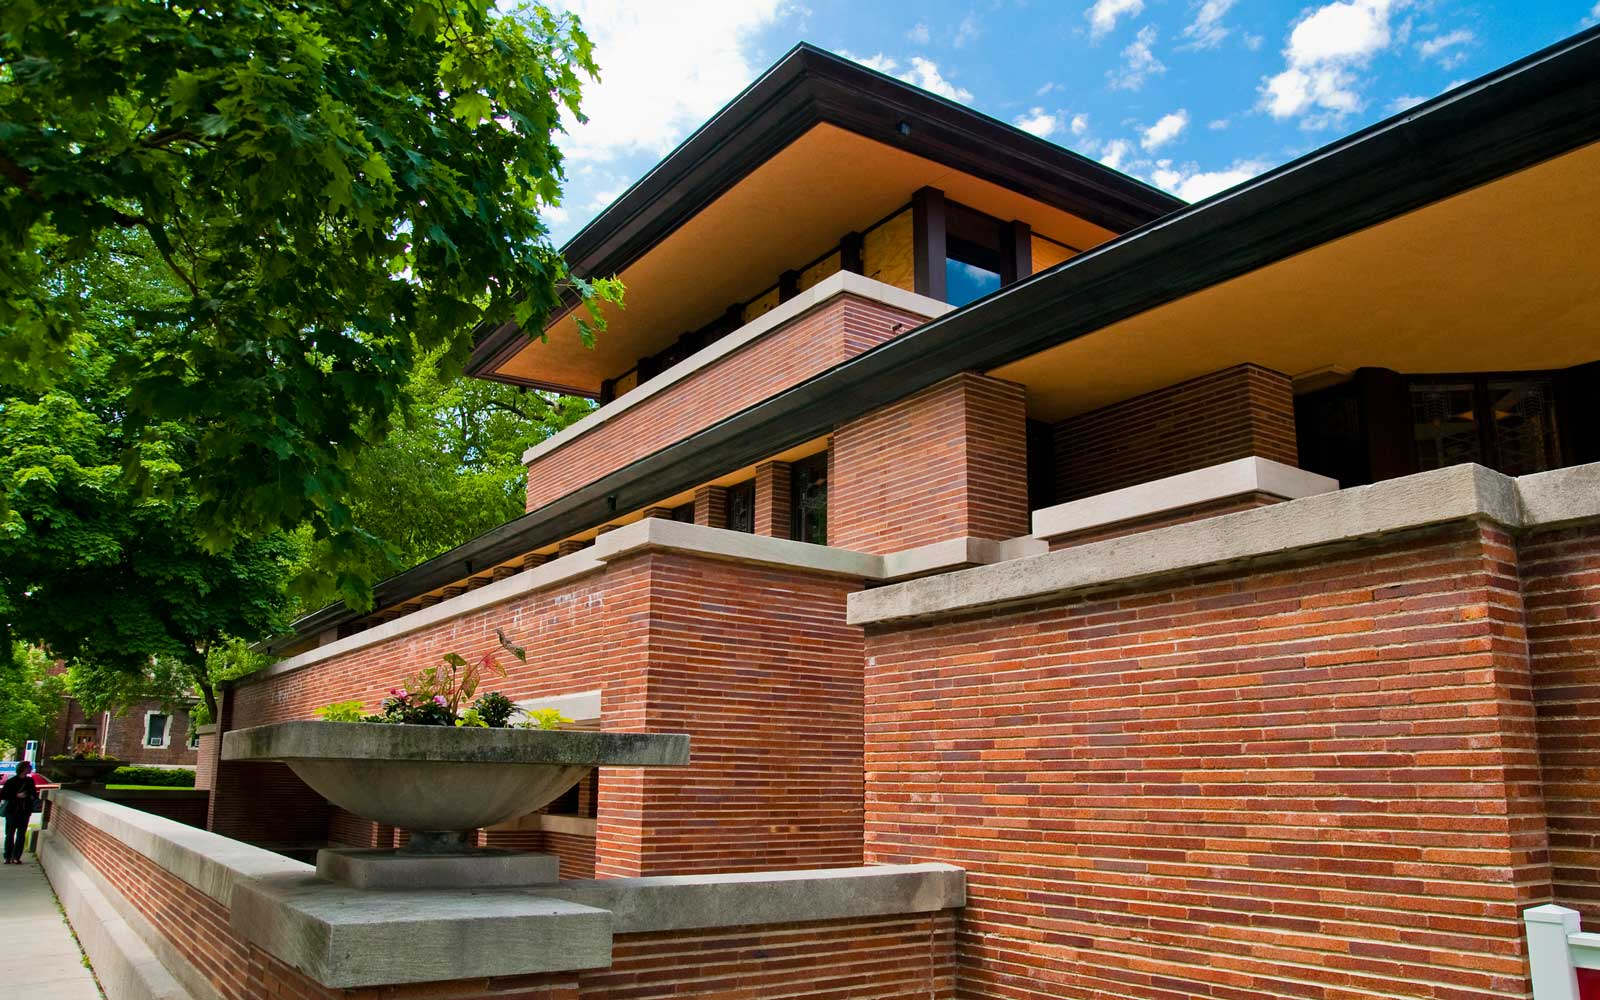 Tour the Robie House, Frank Lloyd Wright's Newly Restored Masterpiece